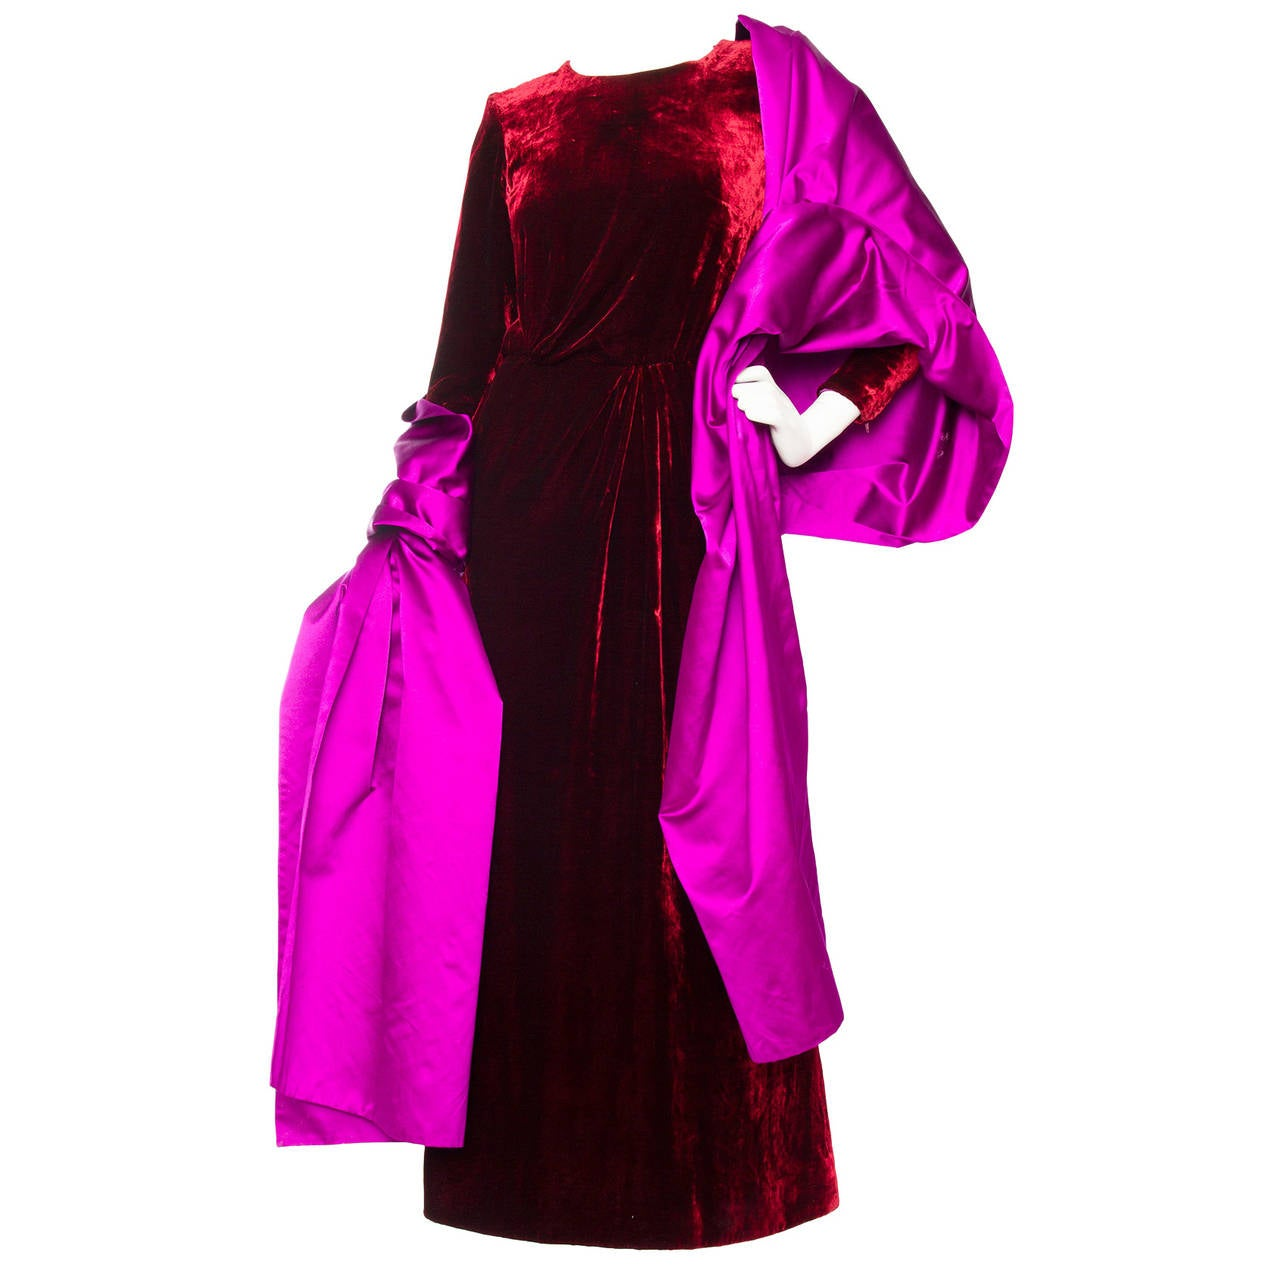 Stunnung Late 1970s Yves Saint Laurent Silk Velvet Haute Couture Dress